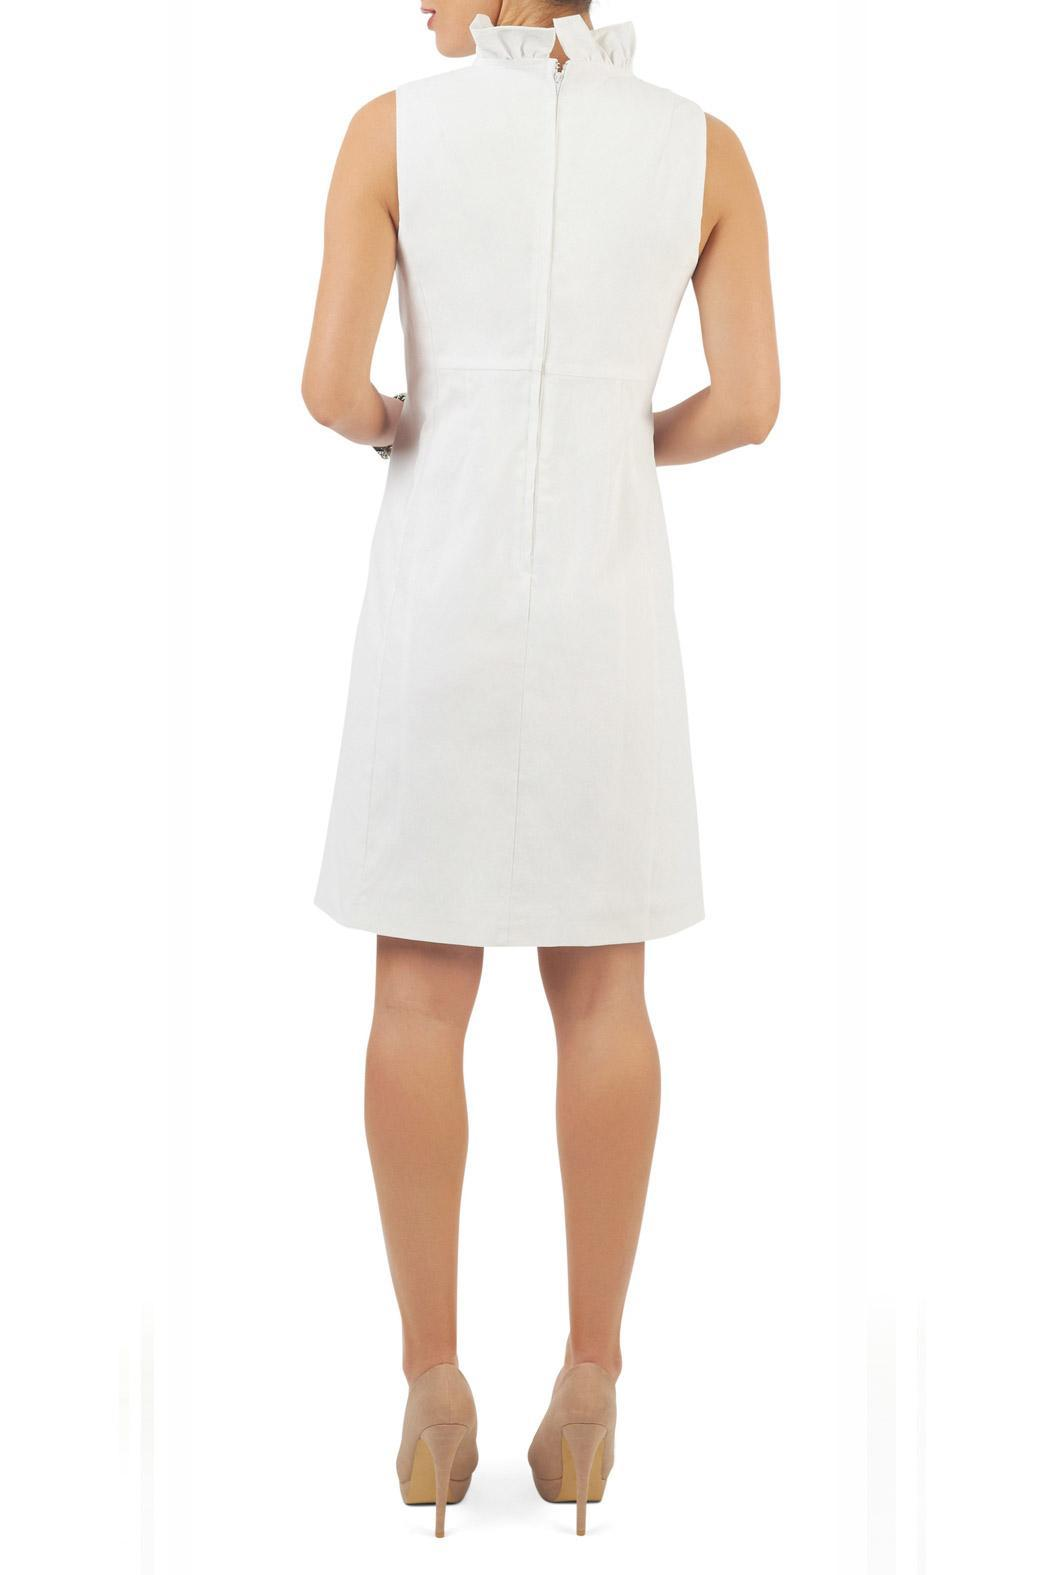 Yvonne Marie Ruffle Collar Dress White From Montreal